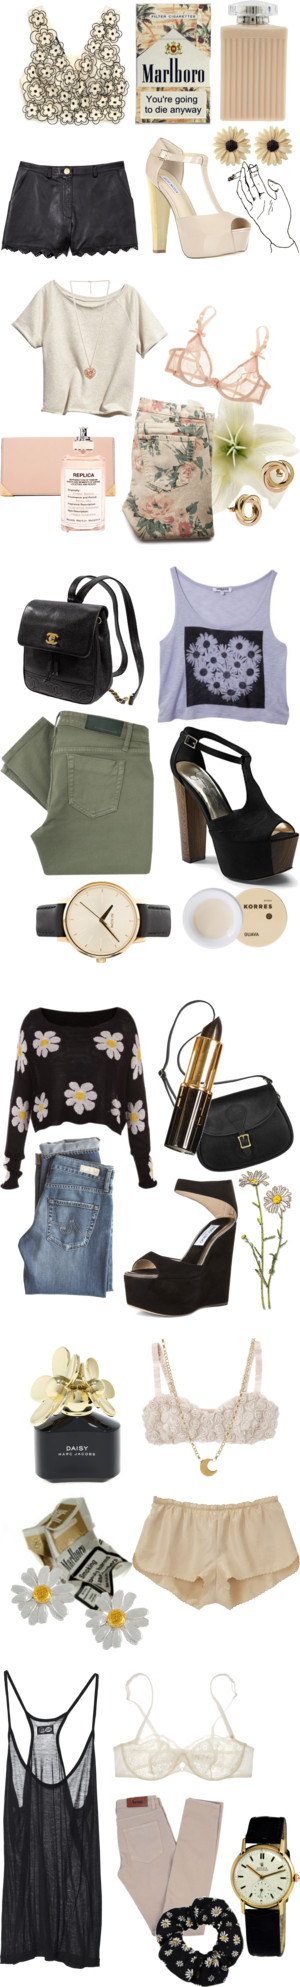 """Floral."" by cauchemar-exquis ❤ liked on Polyvore"